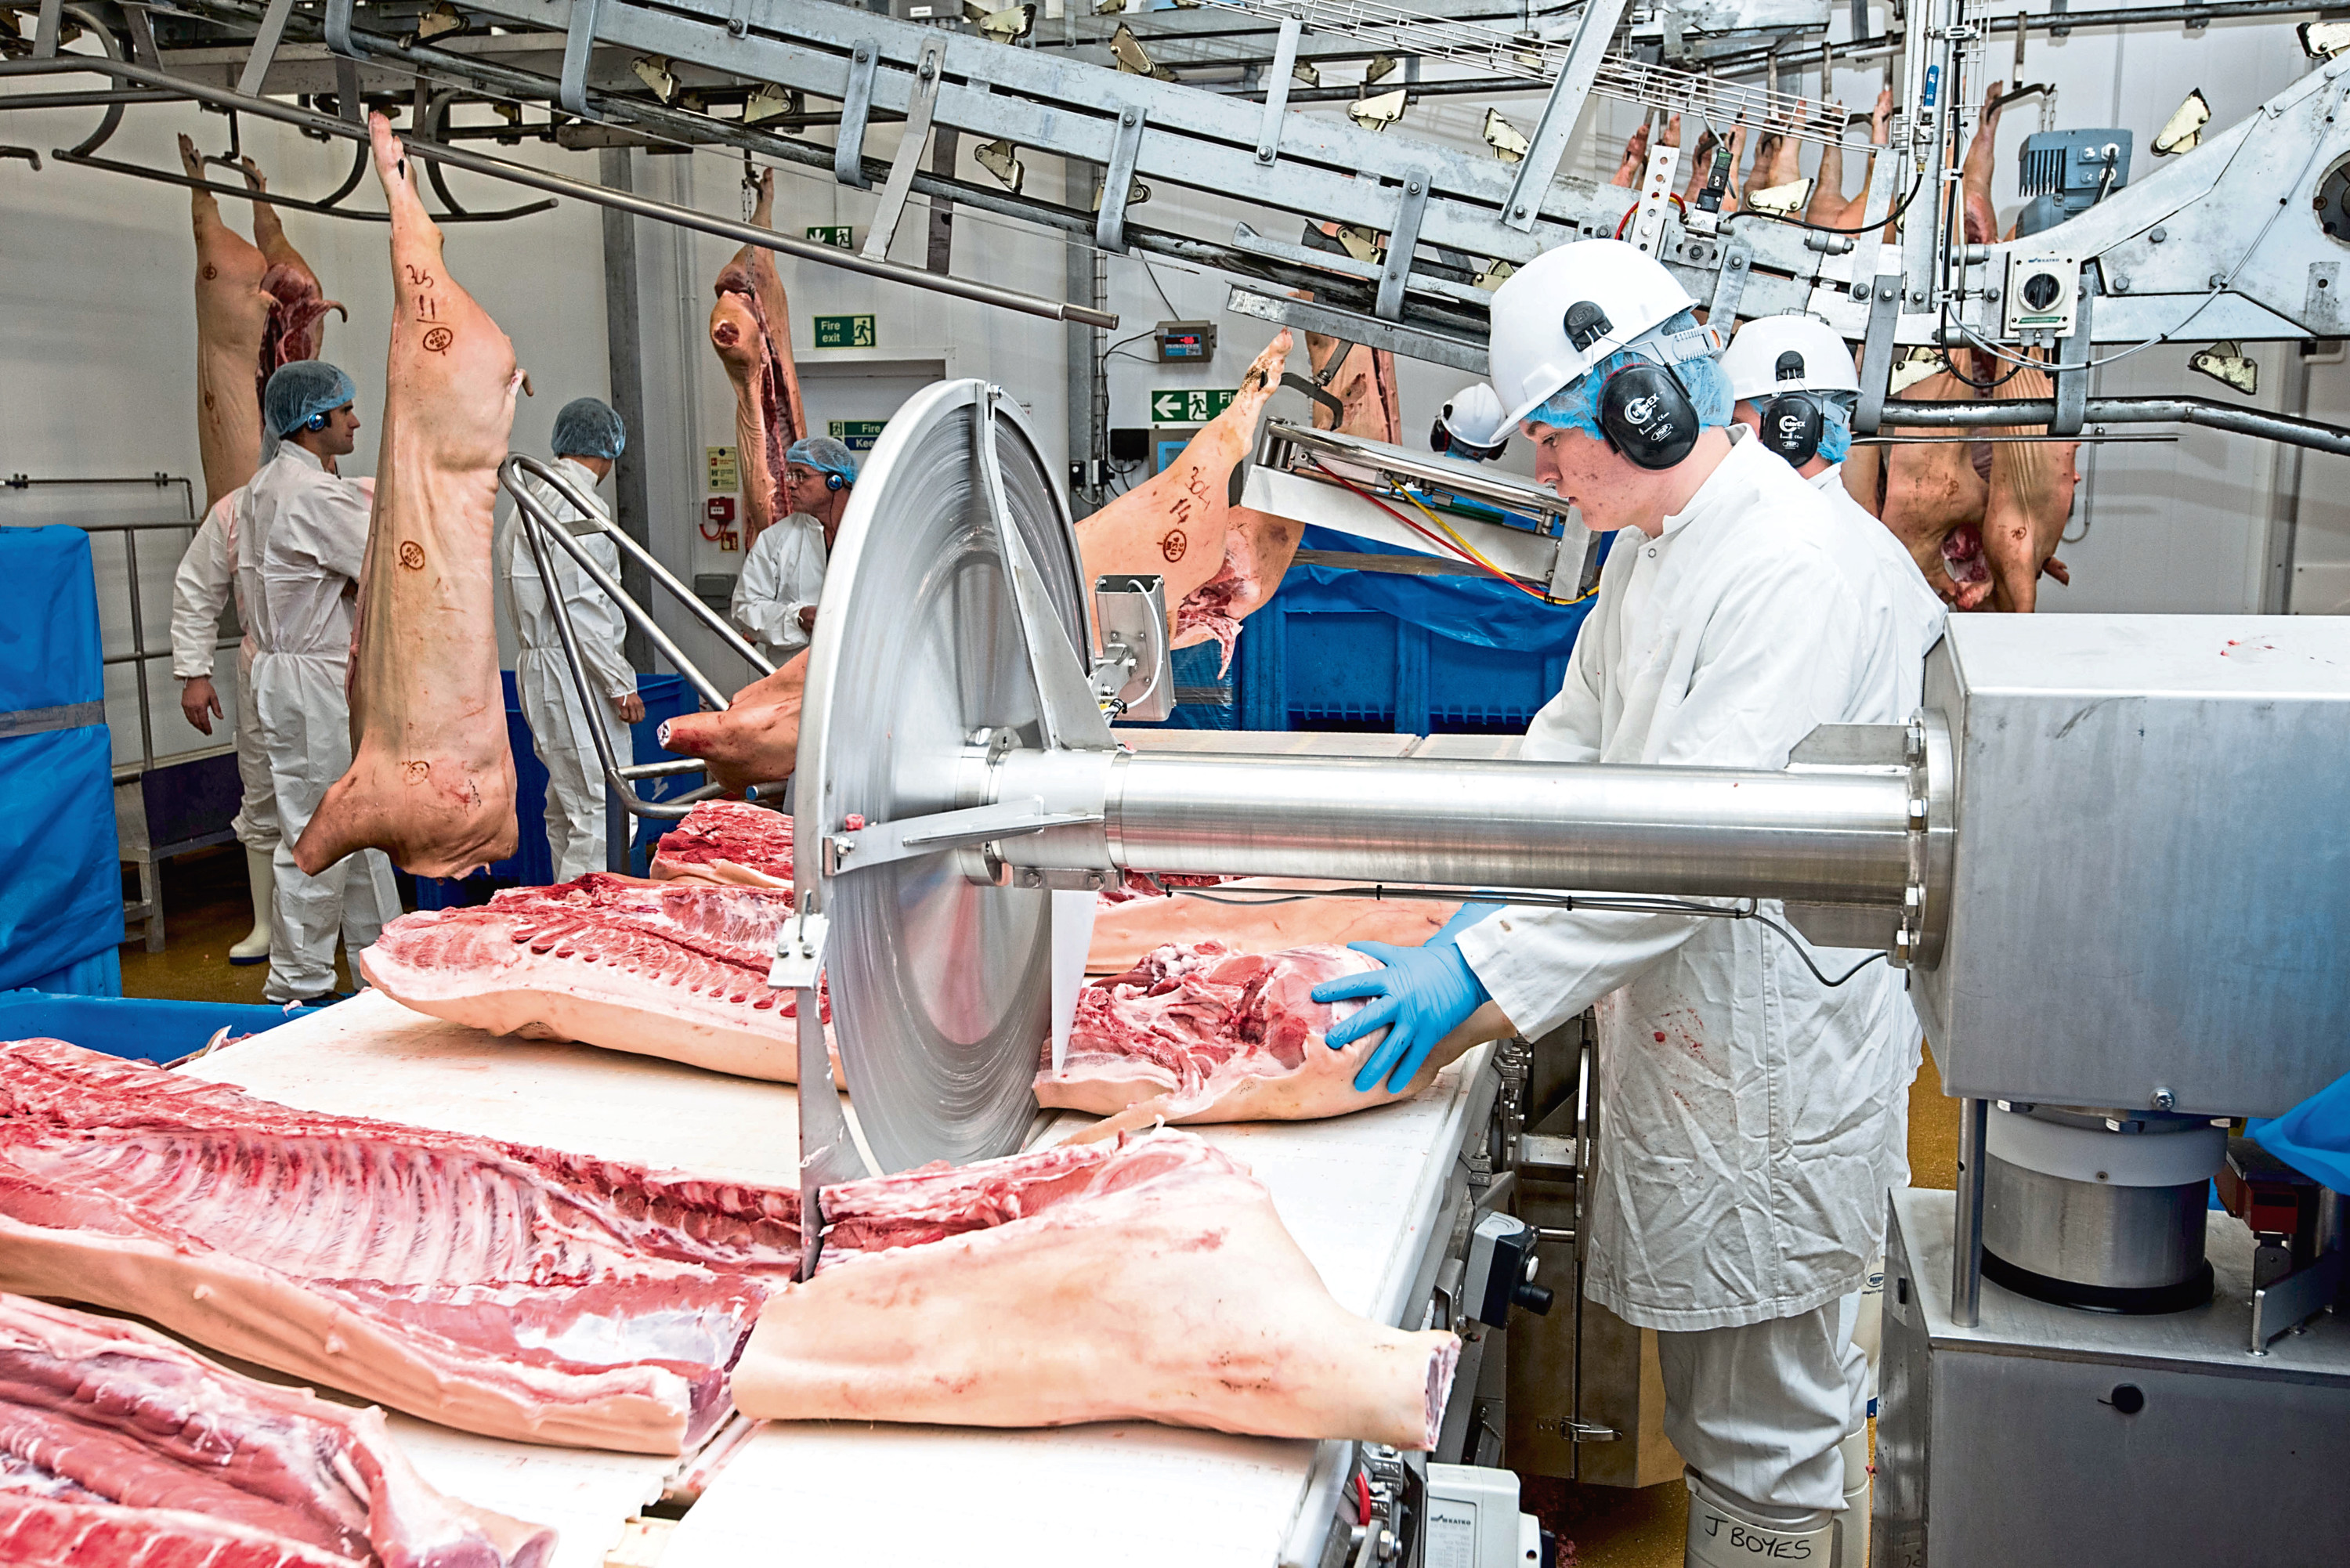 SAMW has called for more respect for the companies which produces red meat.